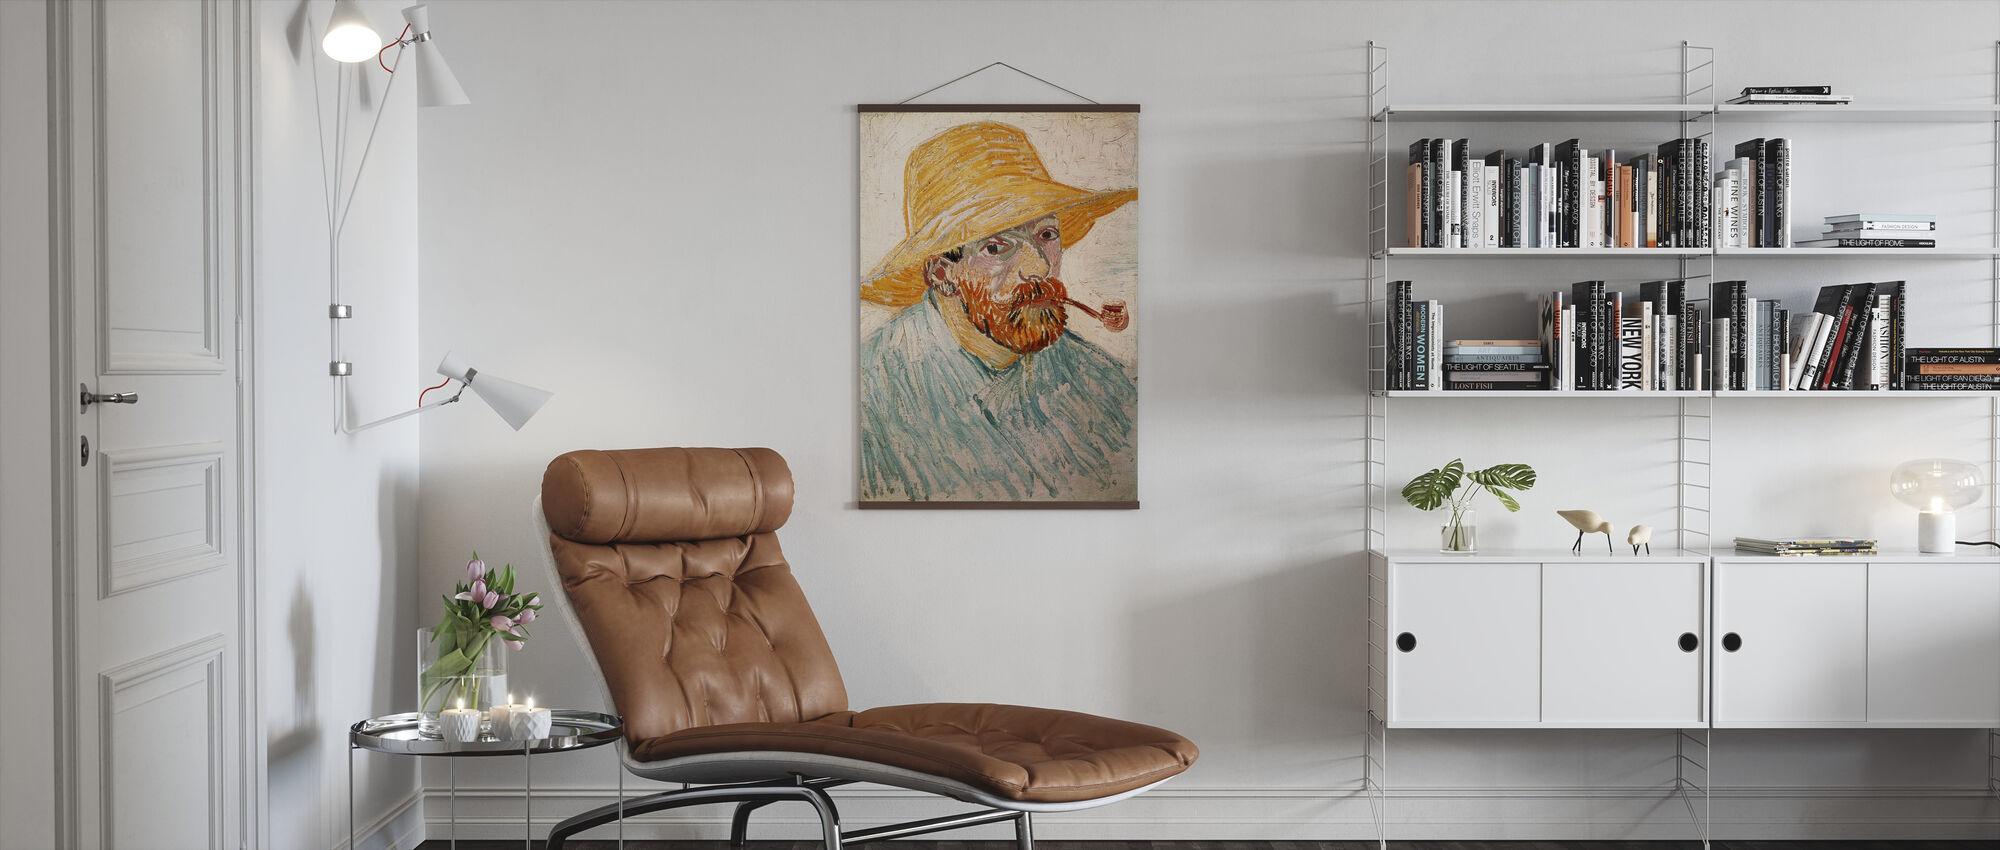 Self Portrait - Vincent van Gogh - Poster - Living Room